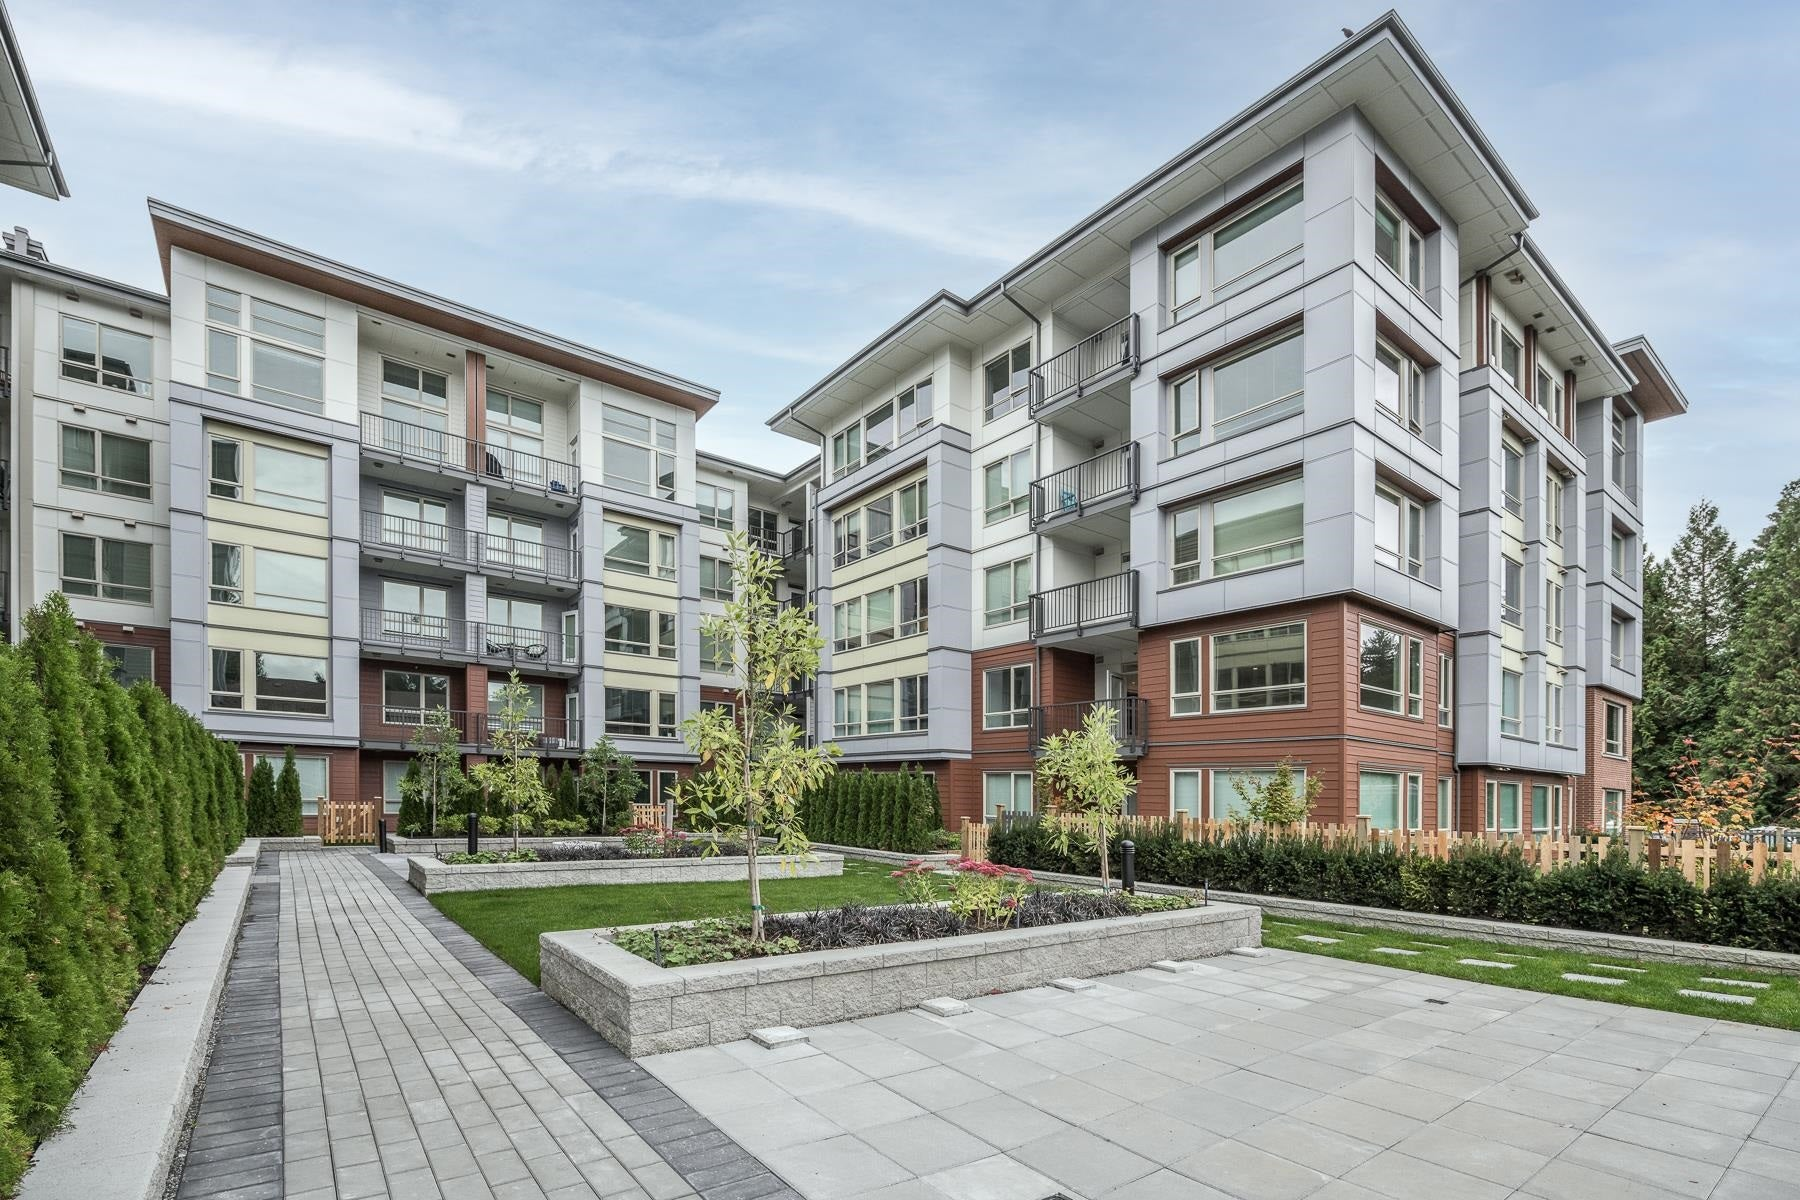 219 2651 LIBRARY LANE - Lynn Valley Apartment/Condo for sale, 2 Bedrooms (R2623232) - #20